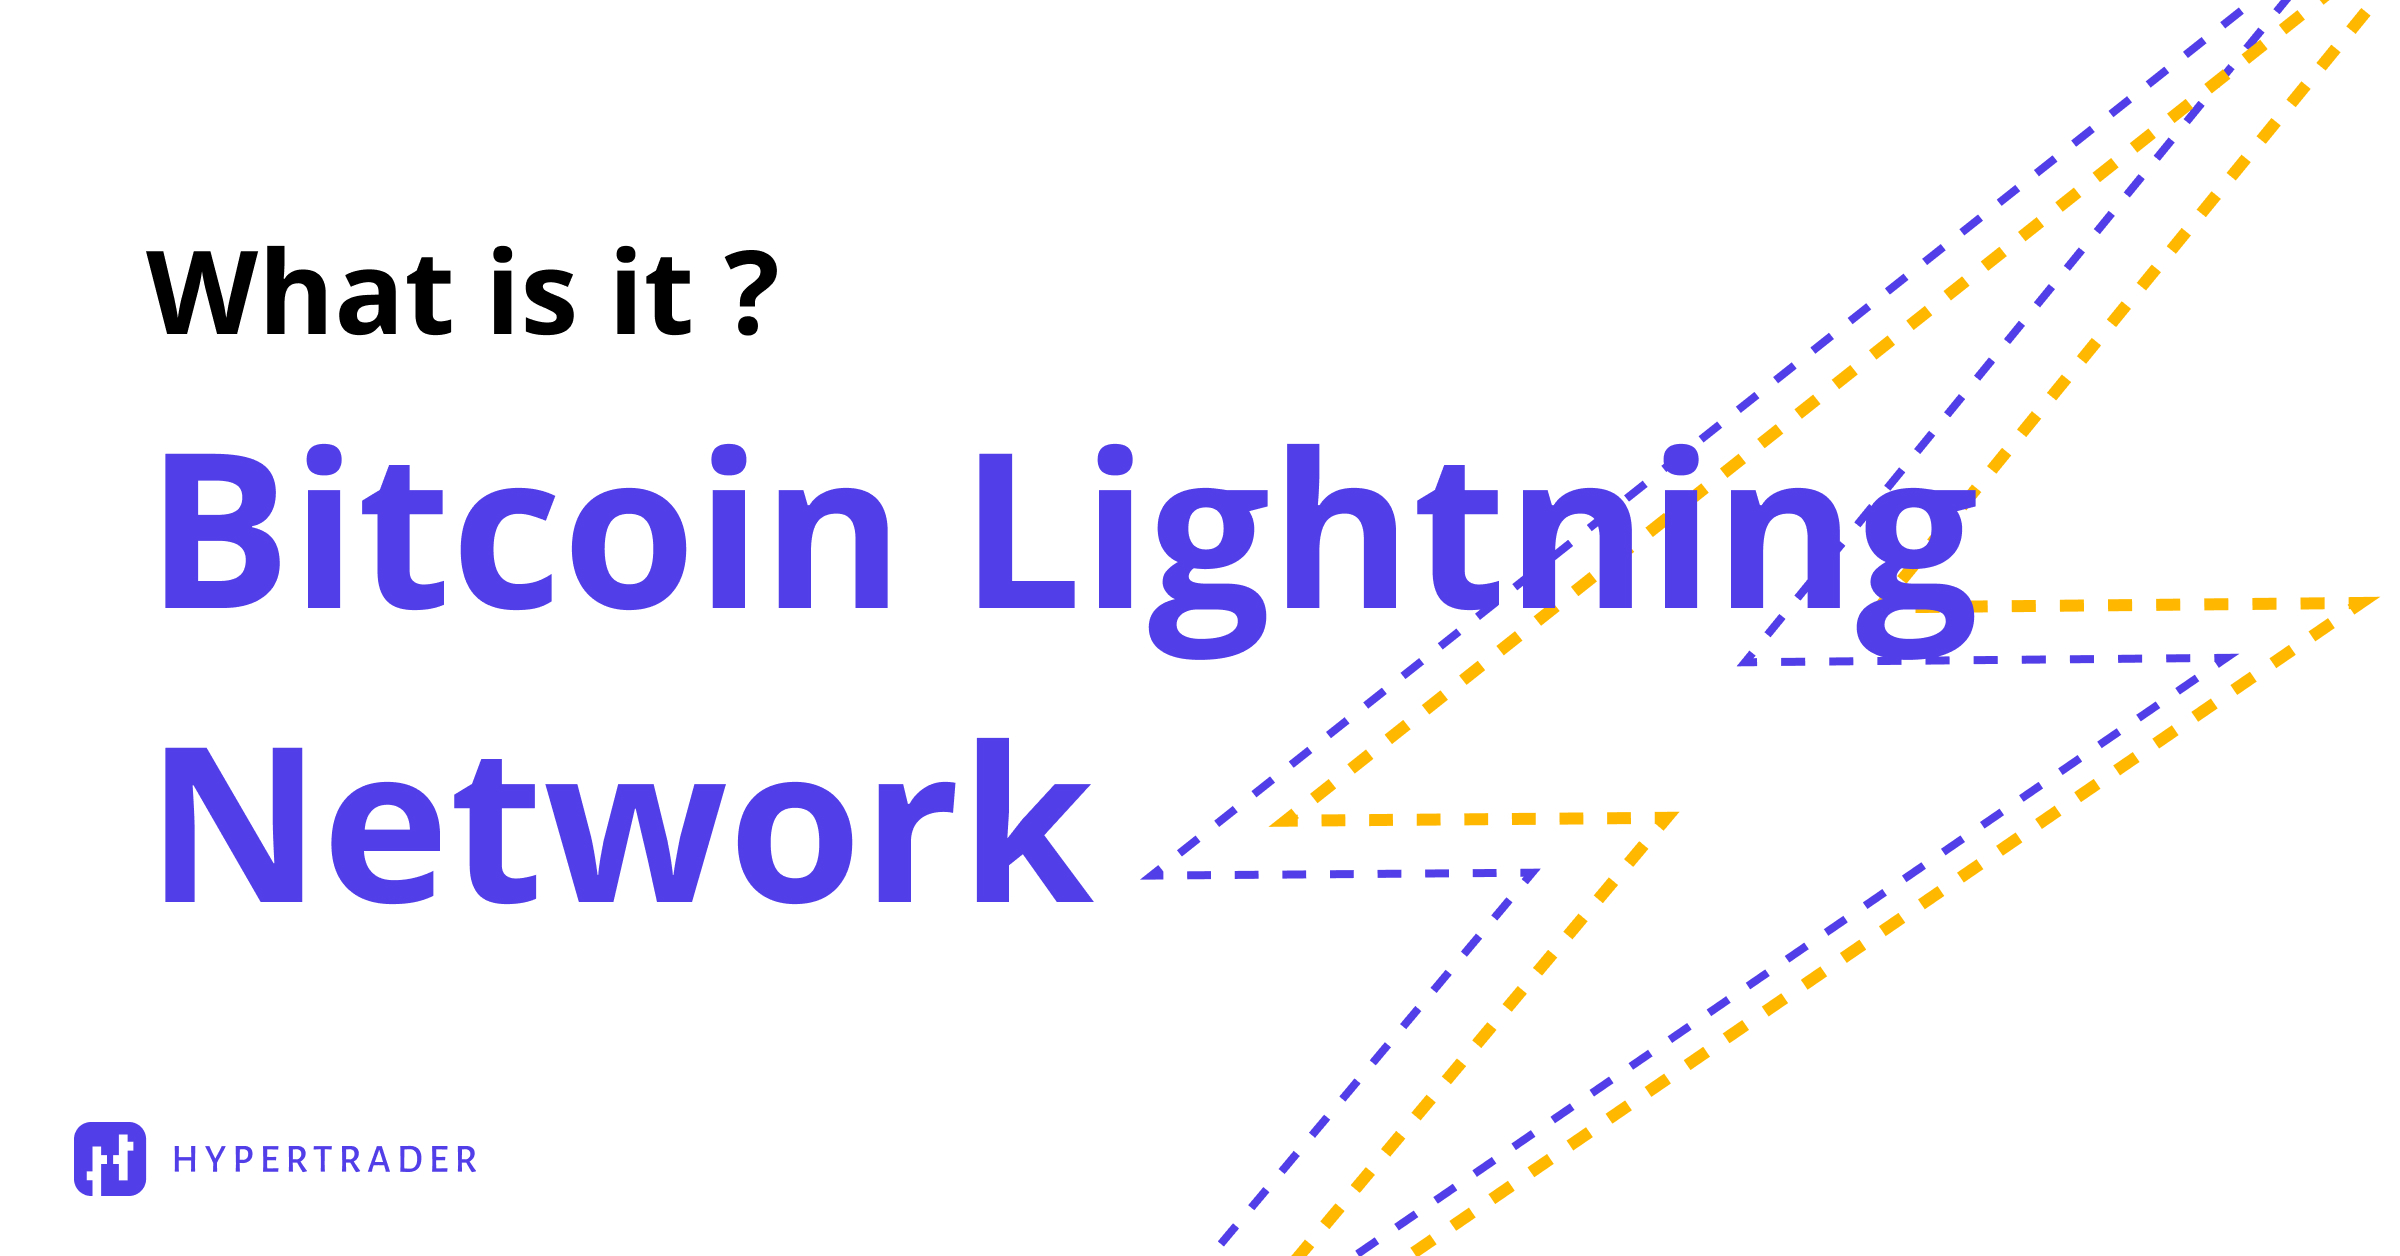 What is the Bitcoin Lightning Network?